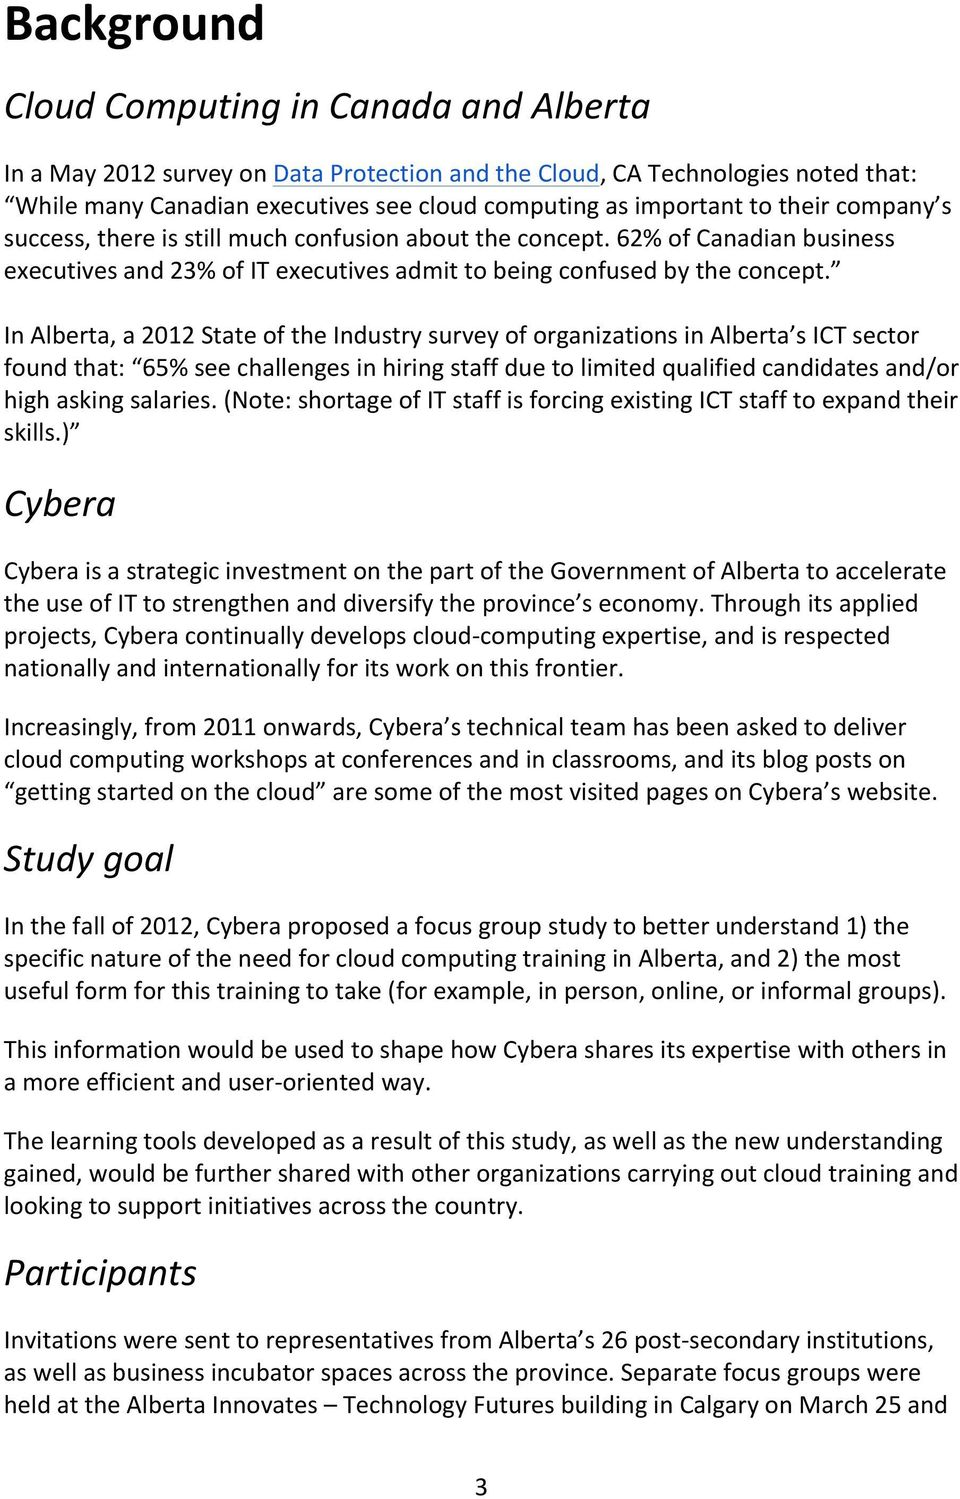 In Alberta, a 2012 State of the Industry survey of organizations in Alberta s ICT sector found that: 65% see challenges in hiring staff due to limited qualified candidates and/or high asking salaries.